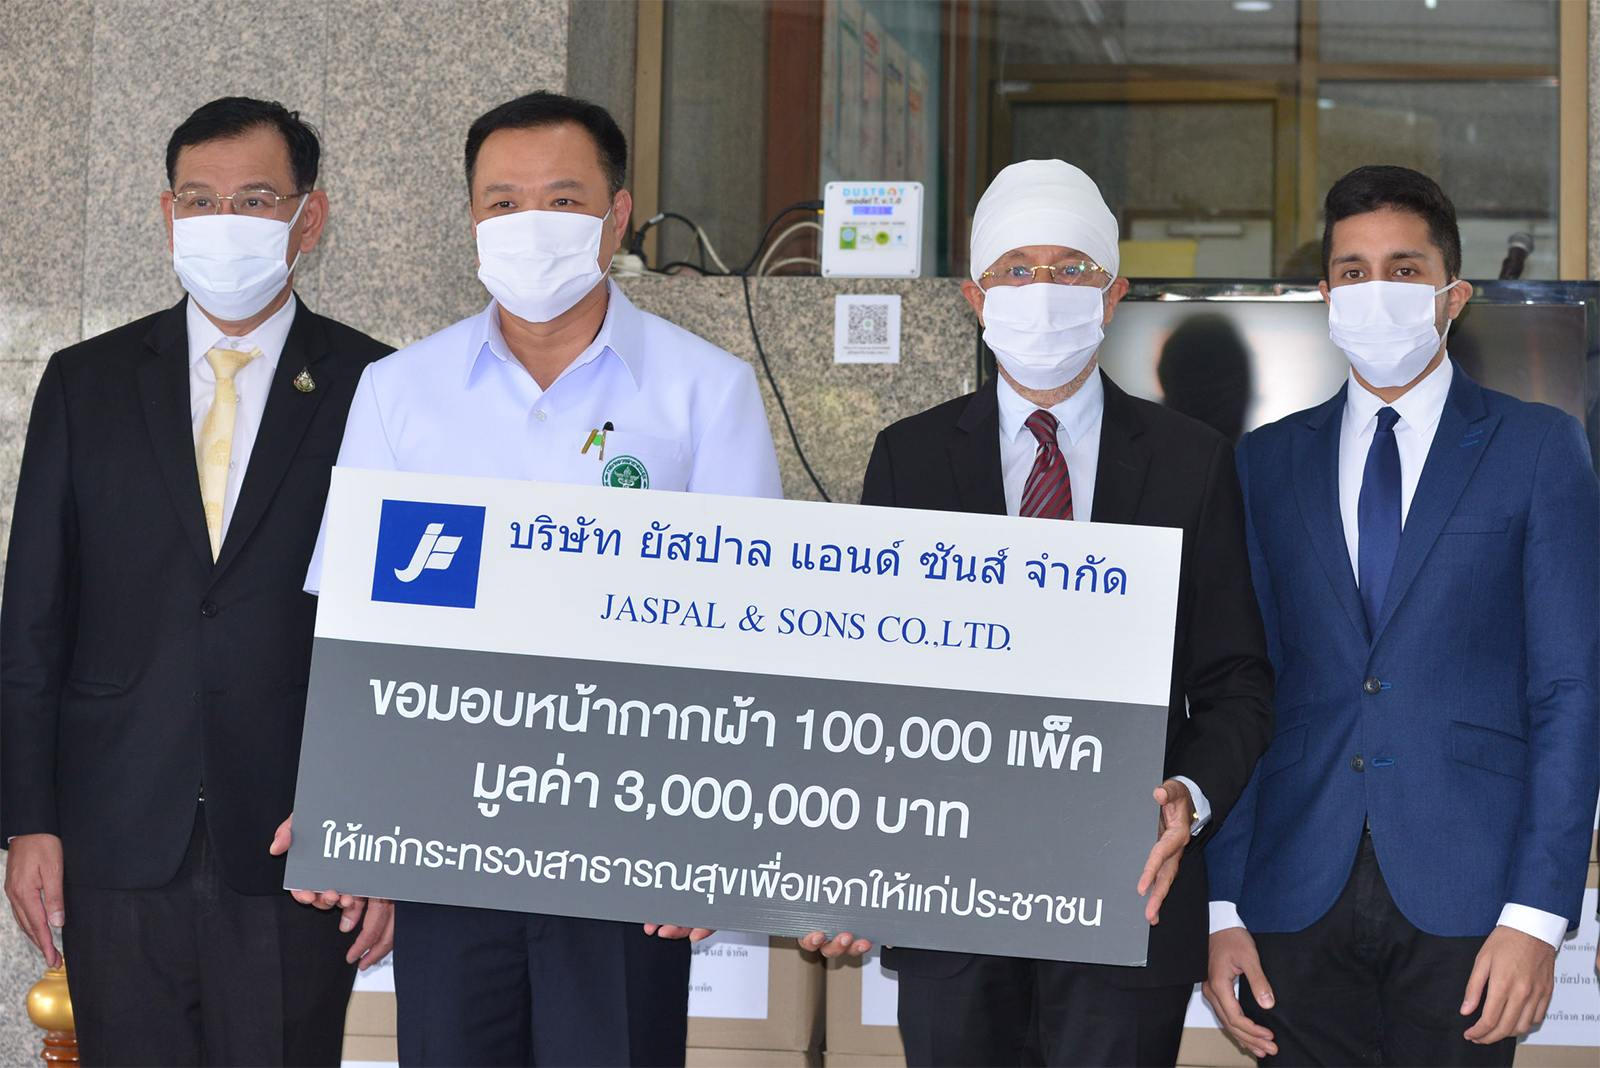 Jaspal & Sons Co., Ltd.donated100,000 packs of masks at Minister of Public Health